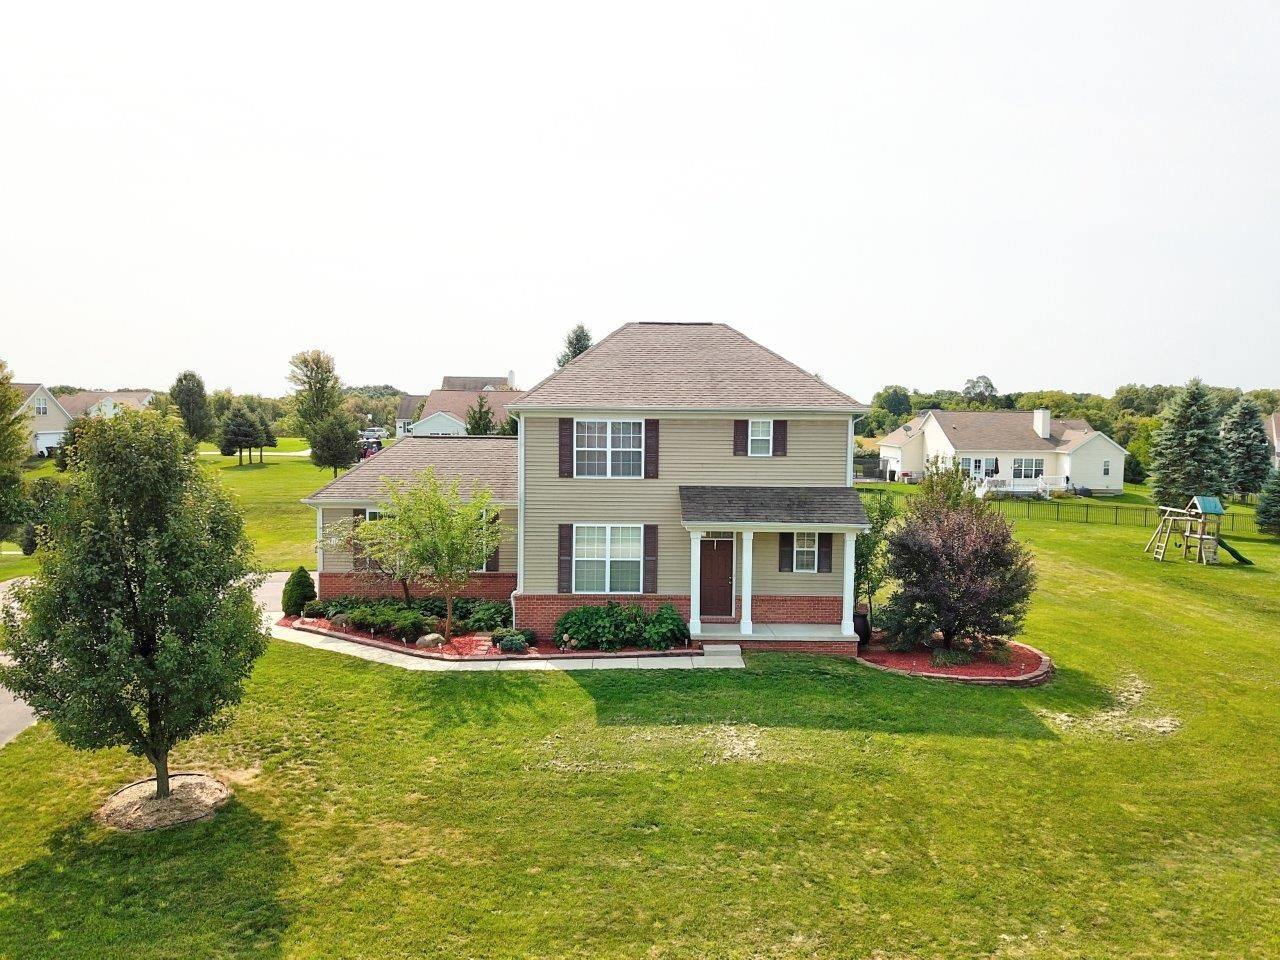 waterfront homes for sale monroe county ny